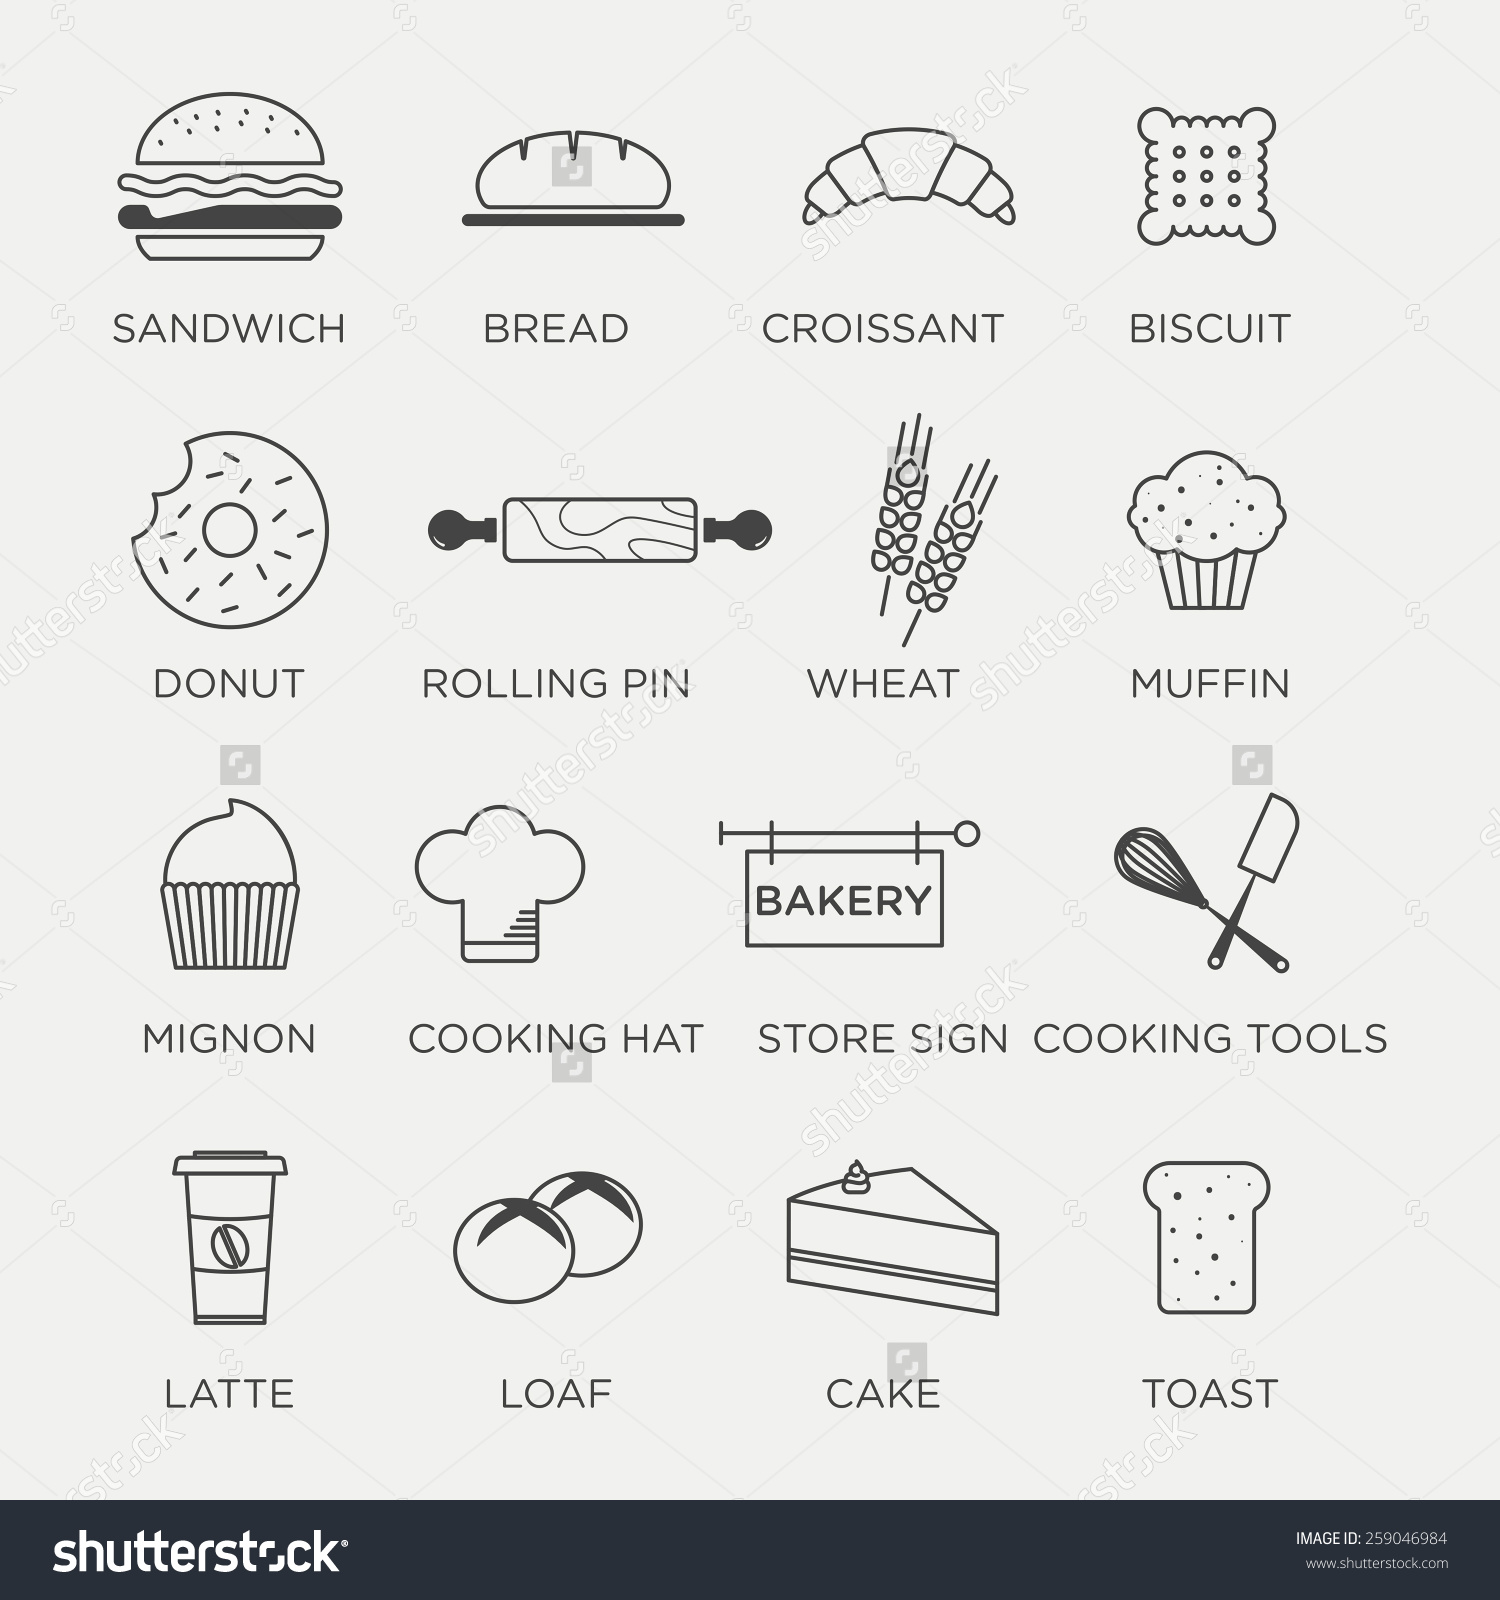 Minimalist clipart #9, Download drawings